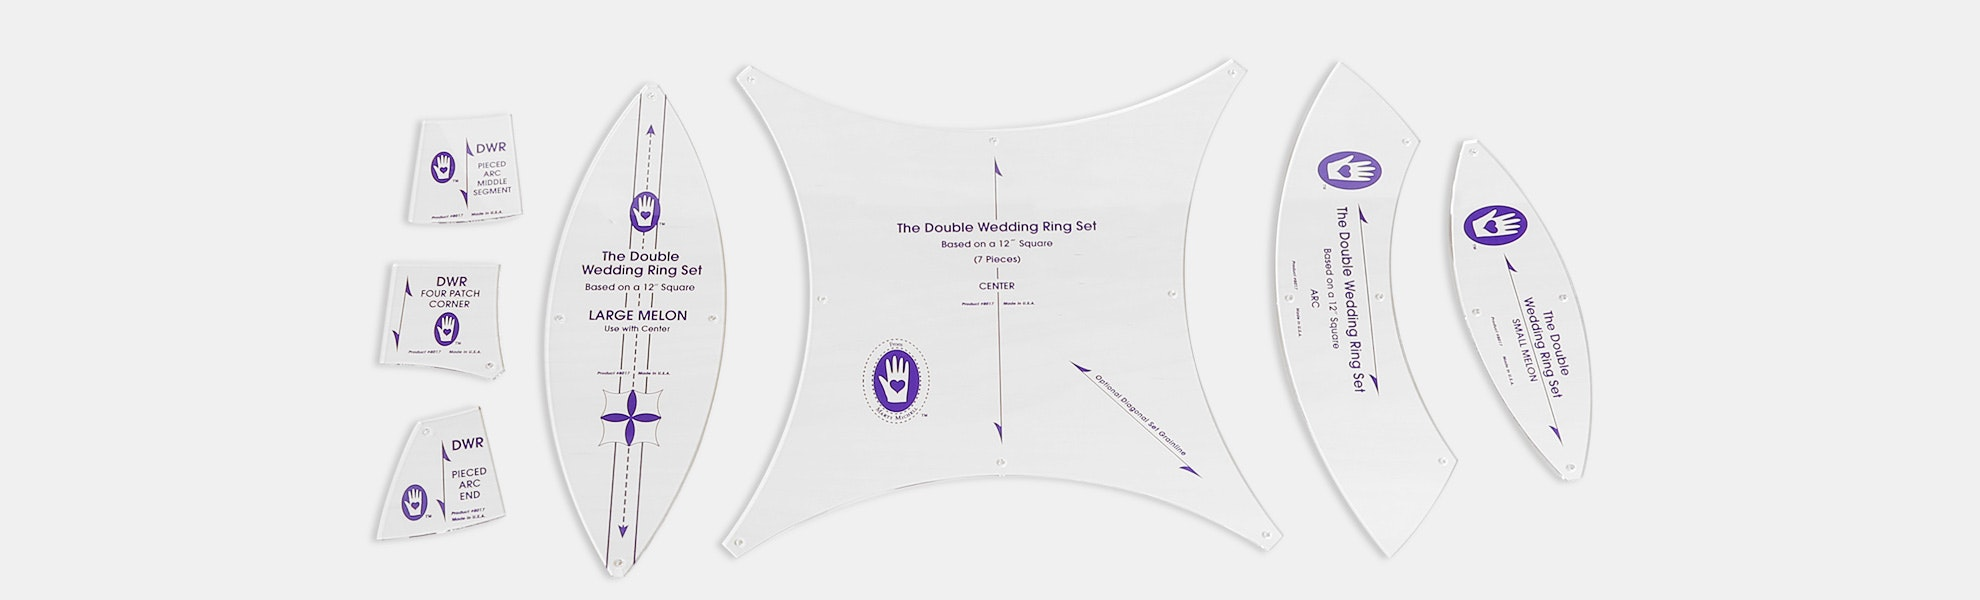 Double Wedding Ring Template from Marti Michell